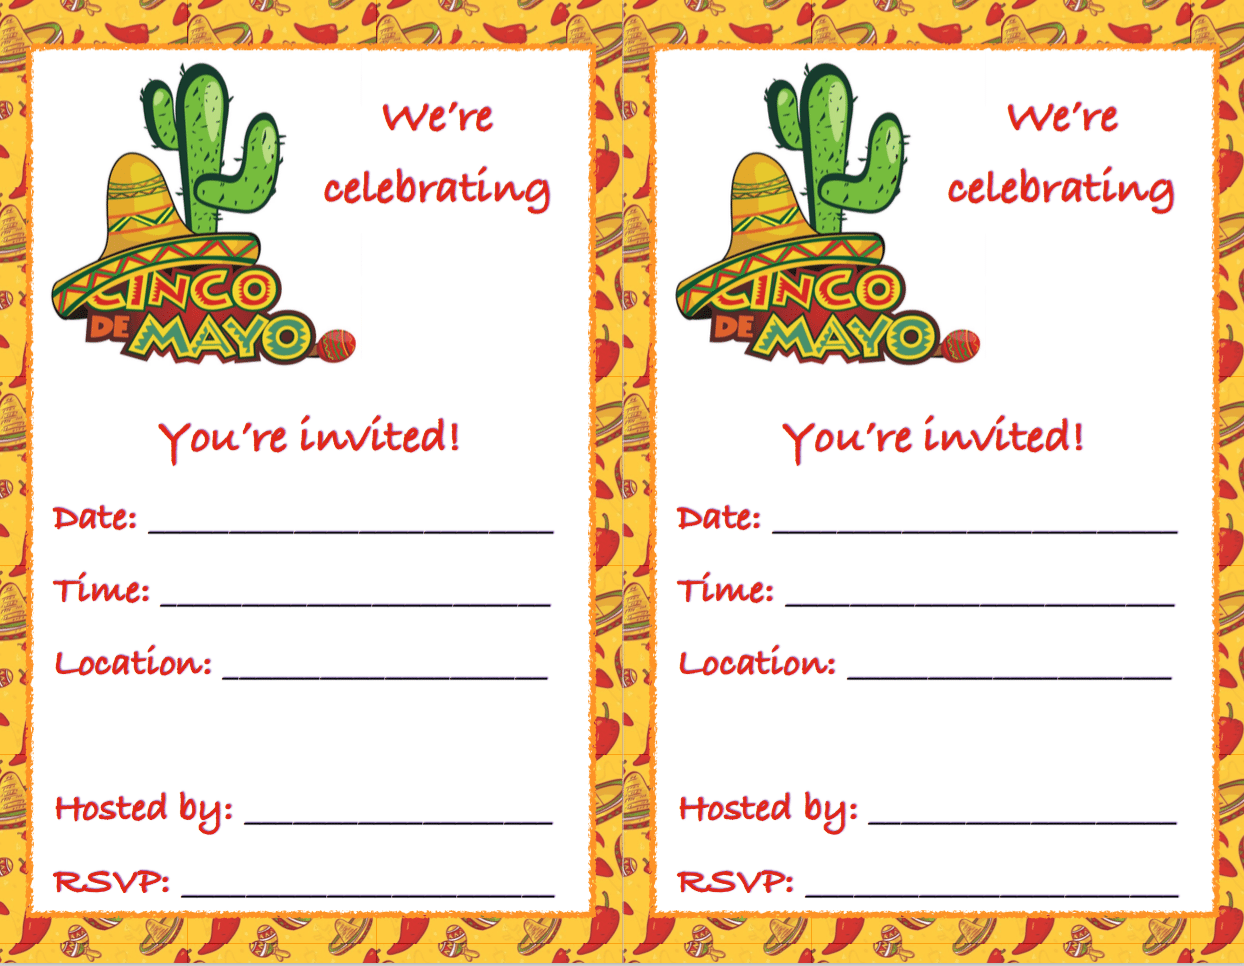 Free Printable Cinco de Mayo invitations: 2 different designs. Just fill in your party details!